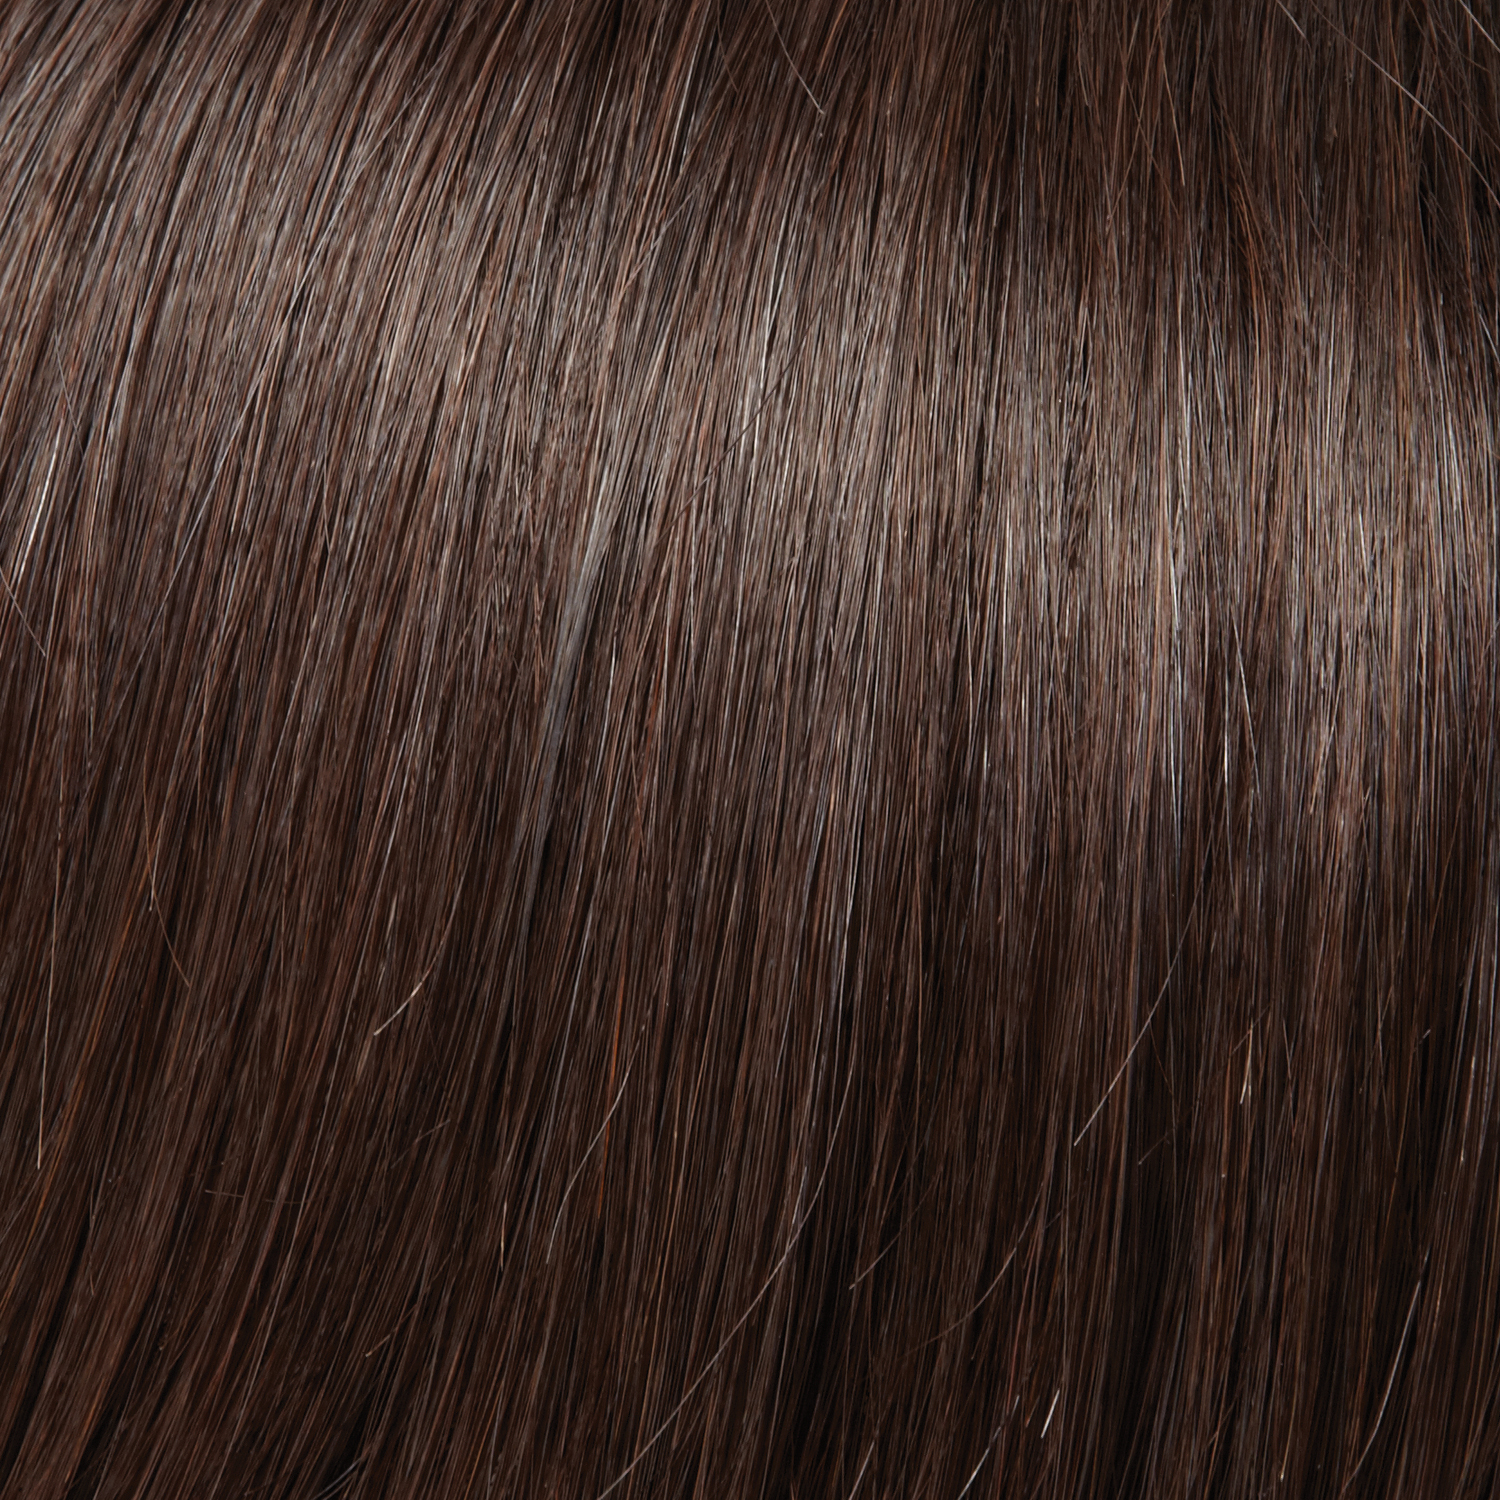 4/6RN - Dark Brown & Red-Golden Brown Renau Natural